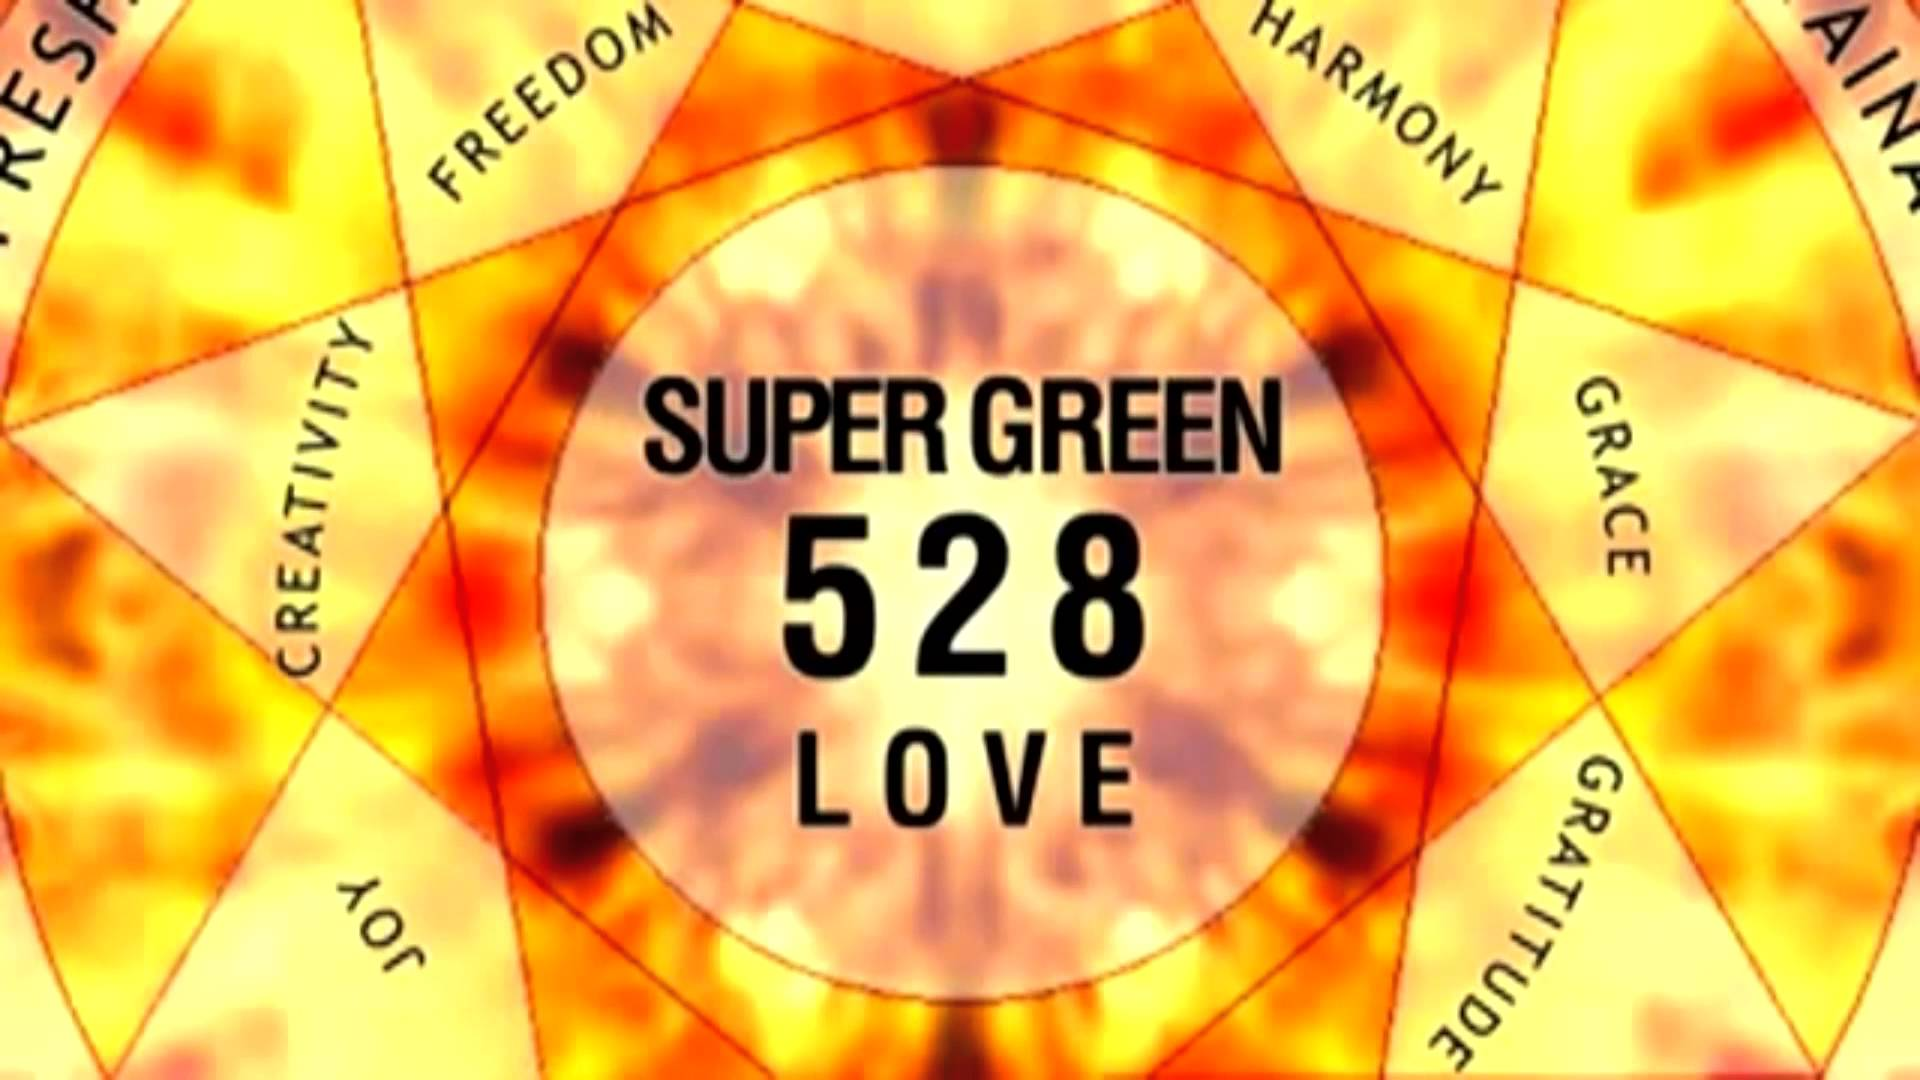 528 love frequency